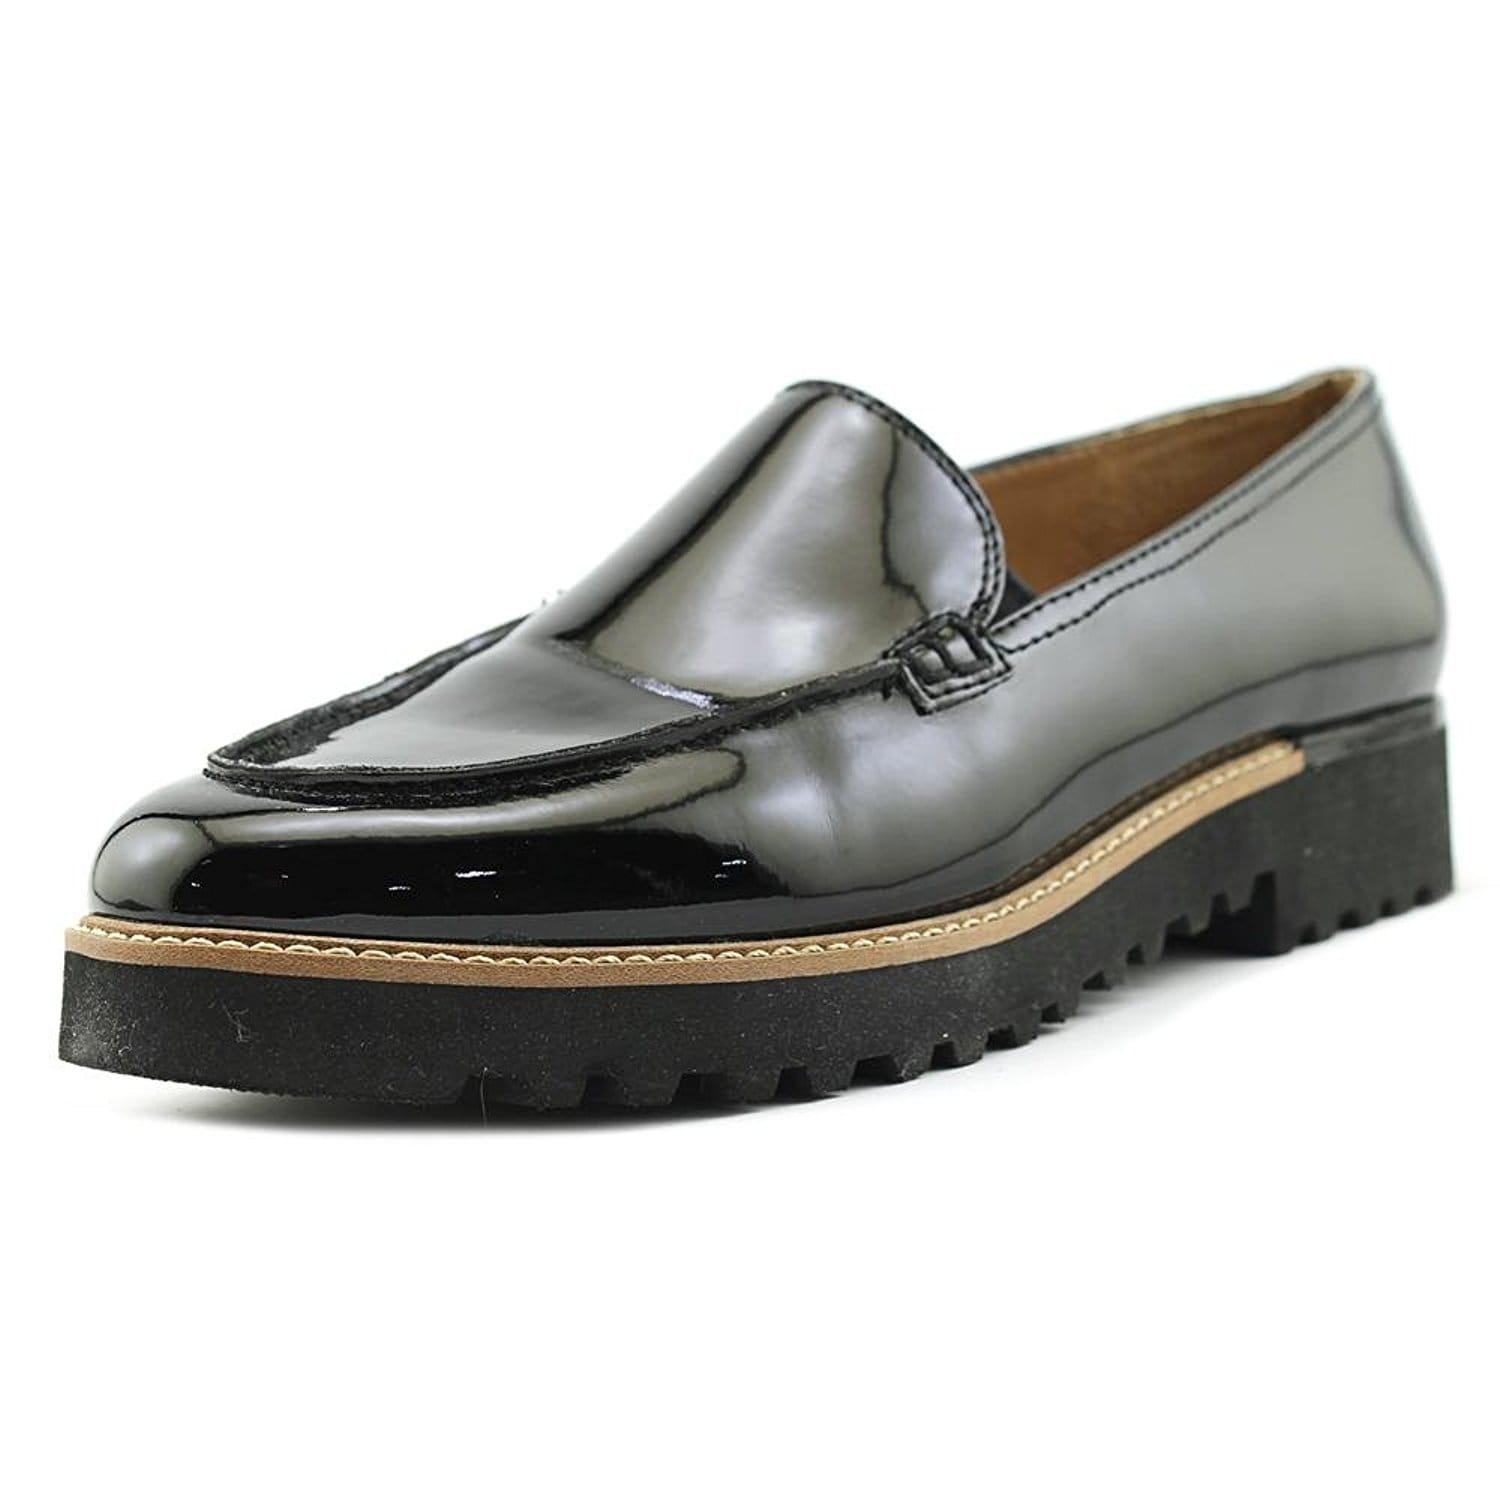 8cda4f6c3af Shop Franco Sarto Womens Cypress Fabric Almond Toe Loafers - Free Shipping  Today - Overstock - 21425725